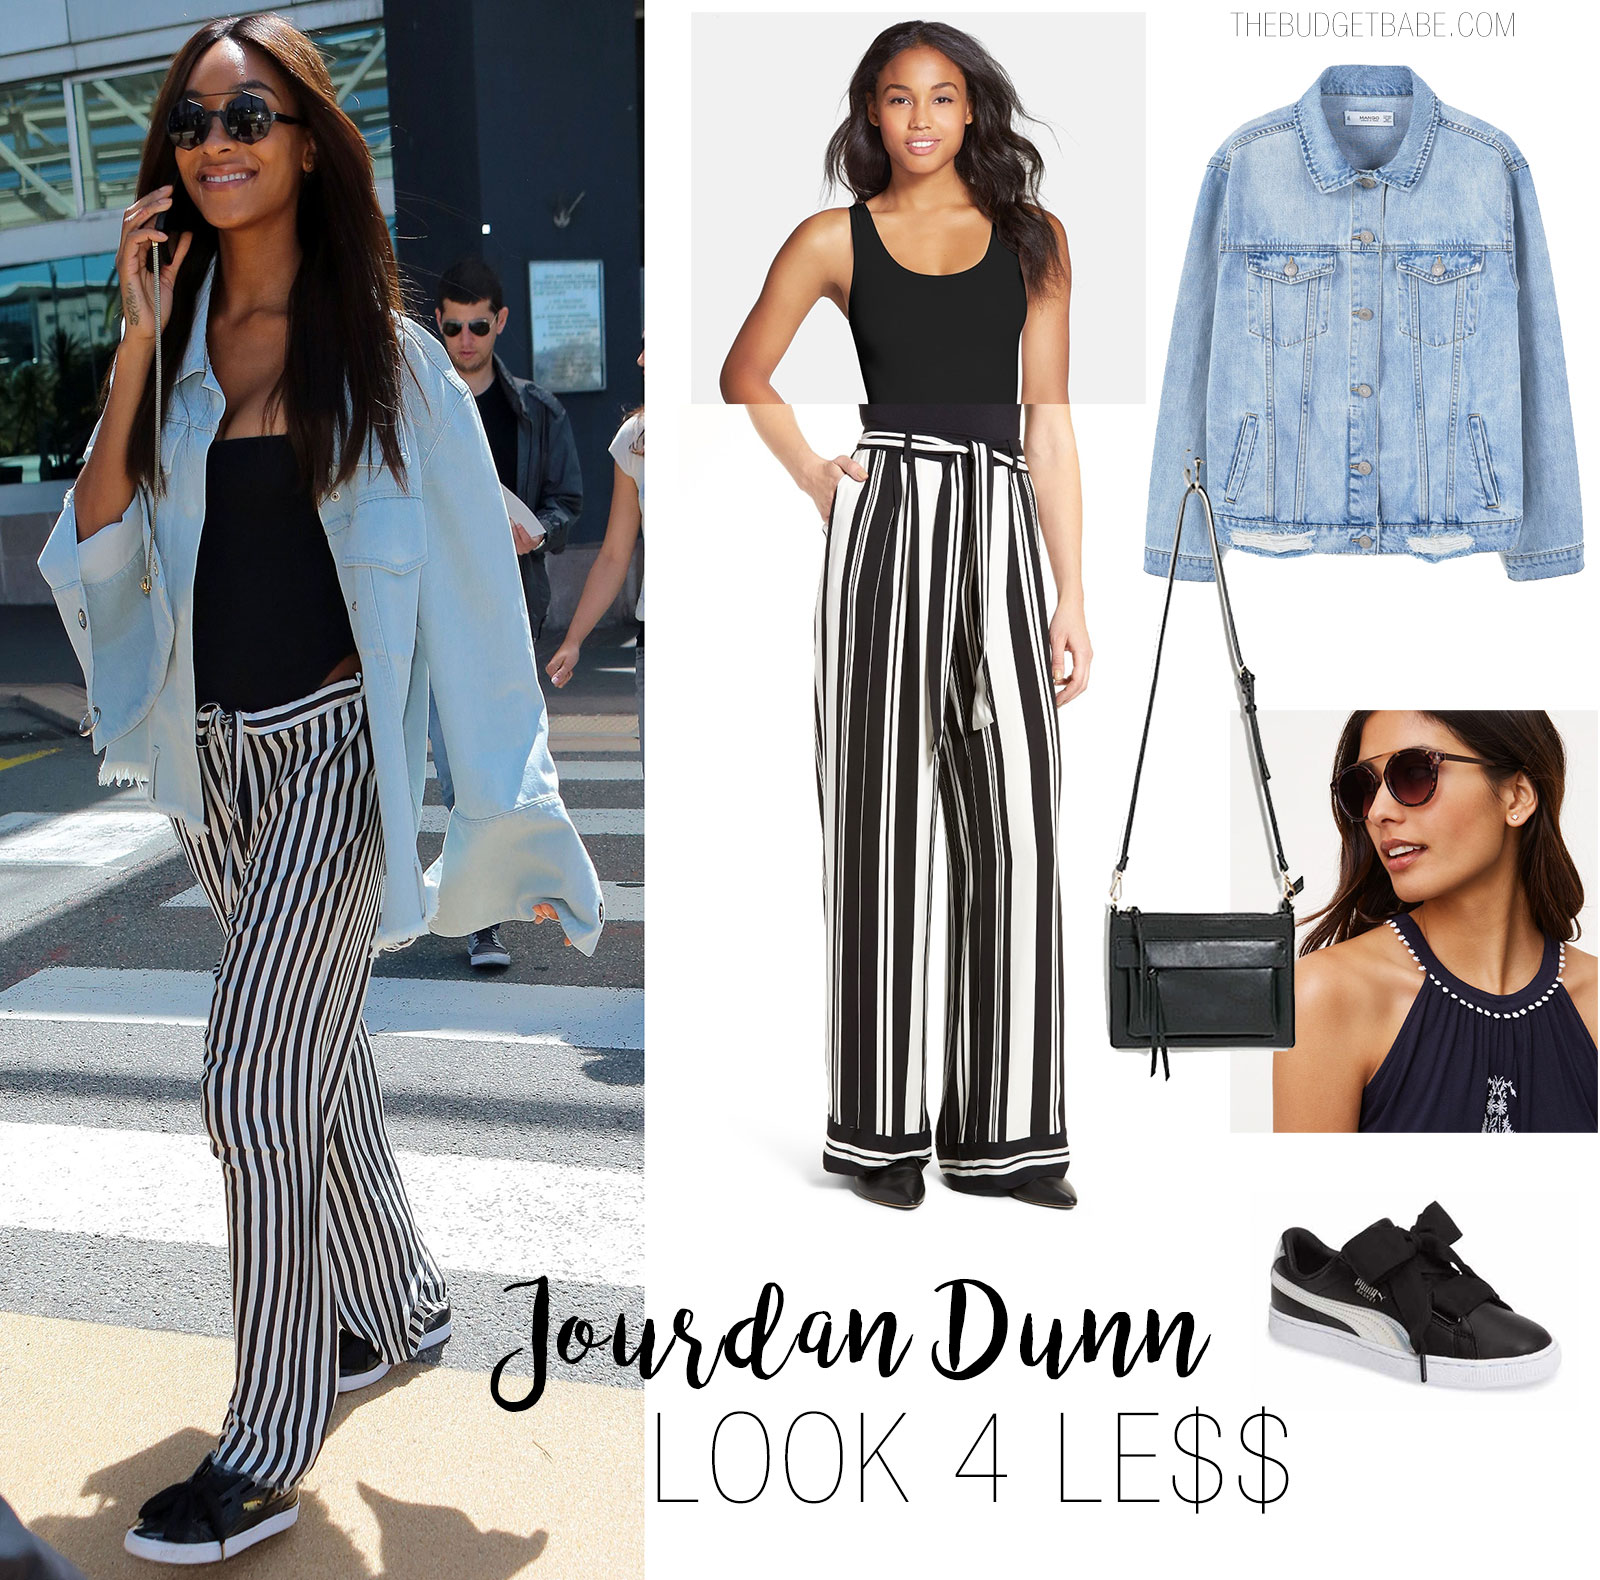 Jourdan Dunn wears vertical stripe pants with an oversized denim jacket and sneakers.